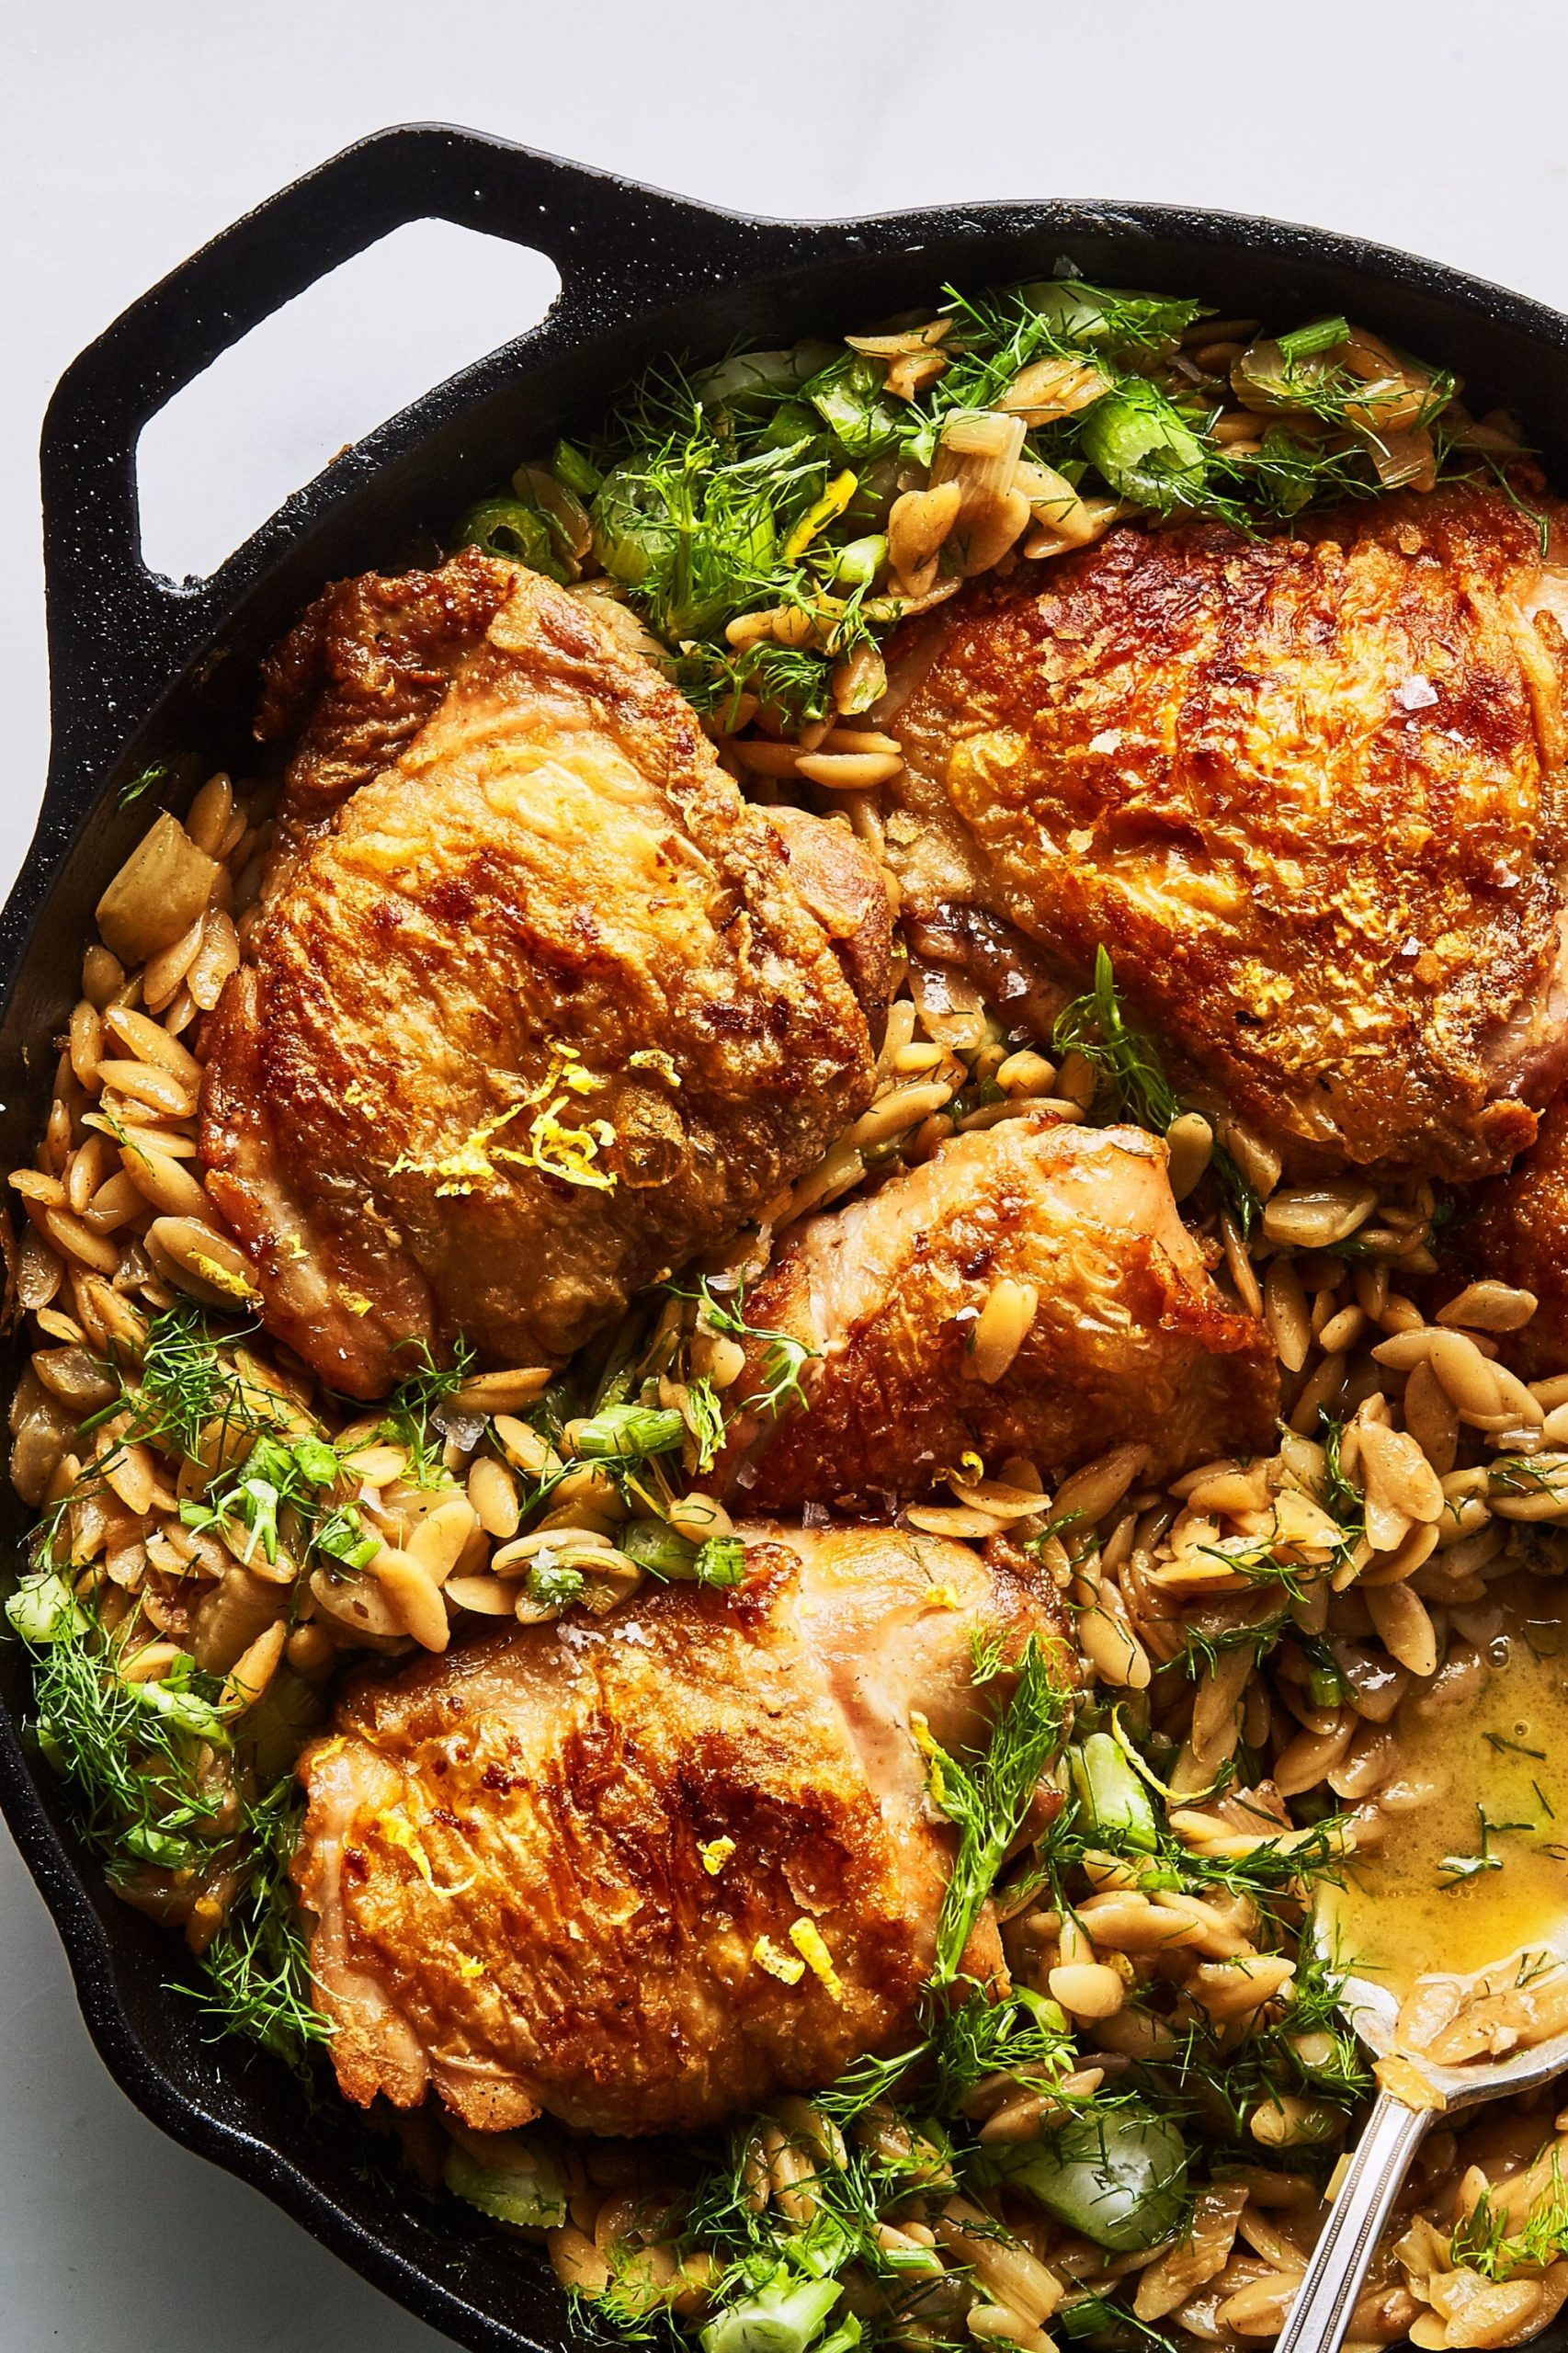 12 Best Chicken Thighs Recipes for Frying, Baking, and More | Bon ...